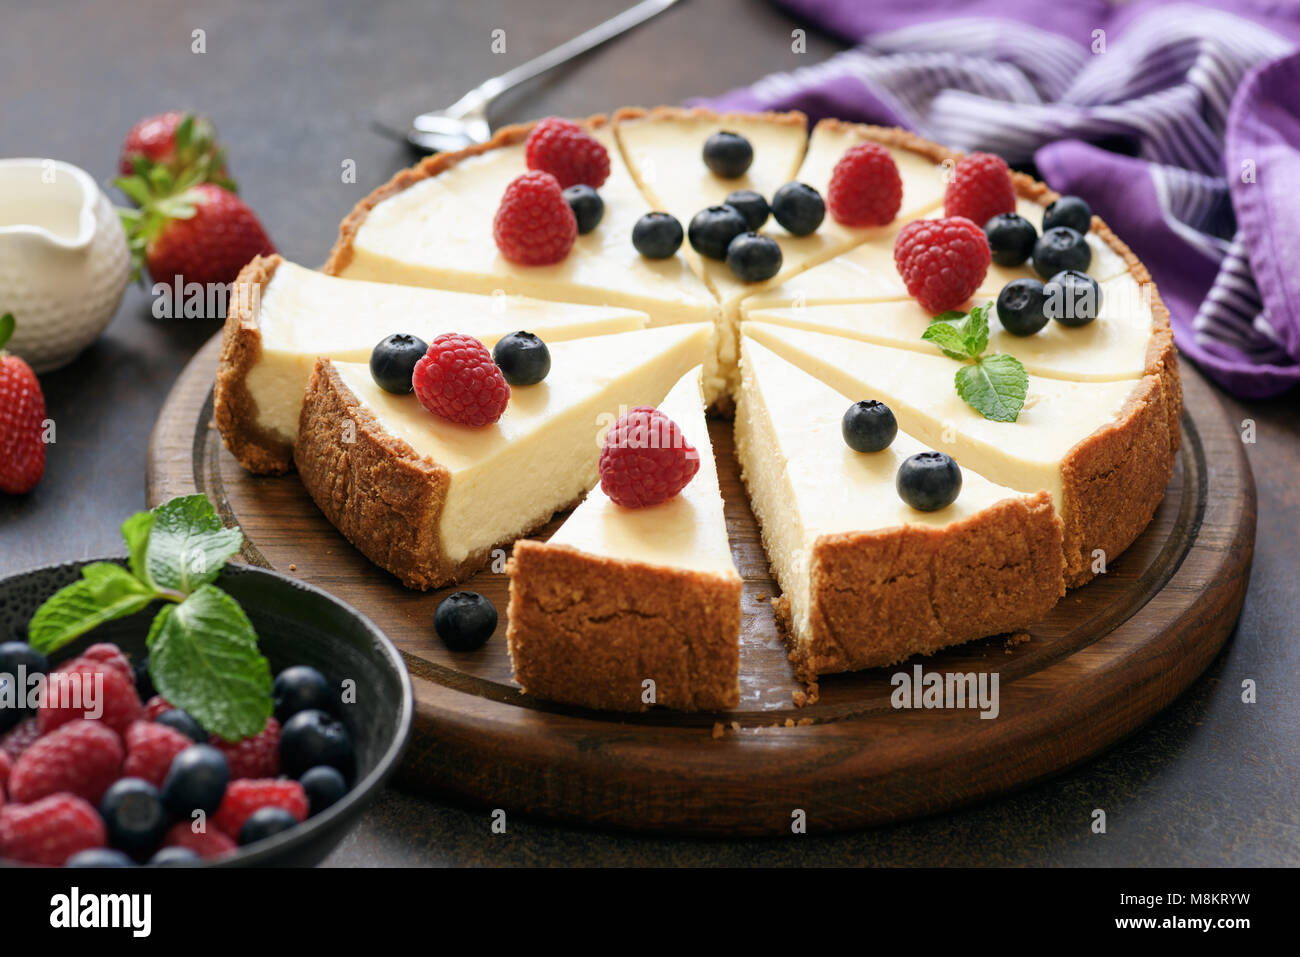 Classic plain New York Cheesecake sliced on wooden board, closeup view, selective focus Stock Photo